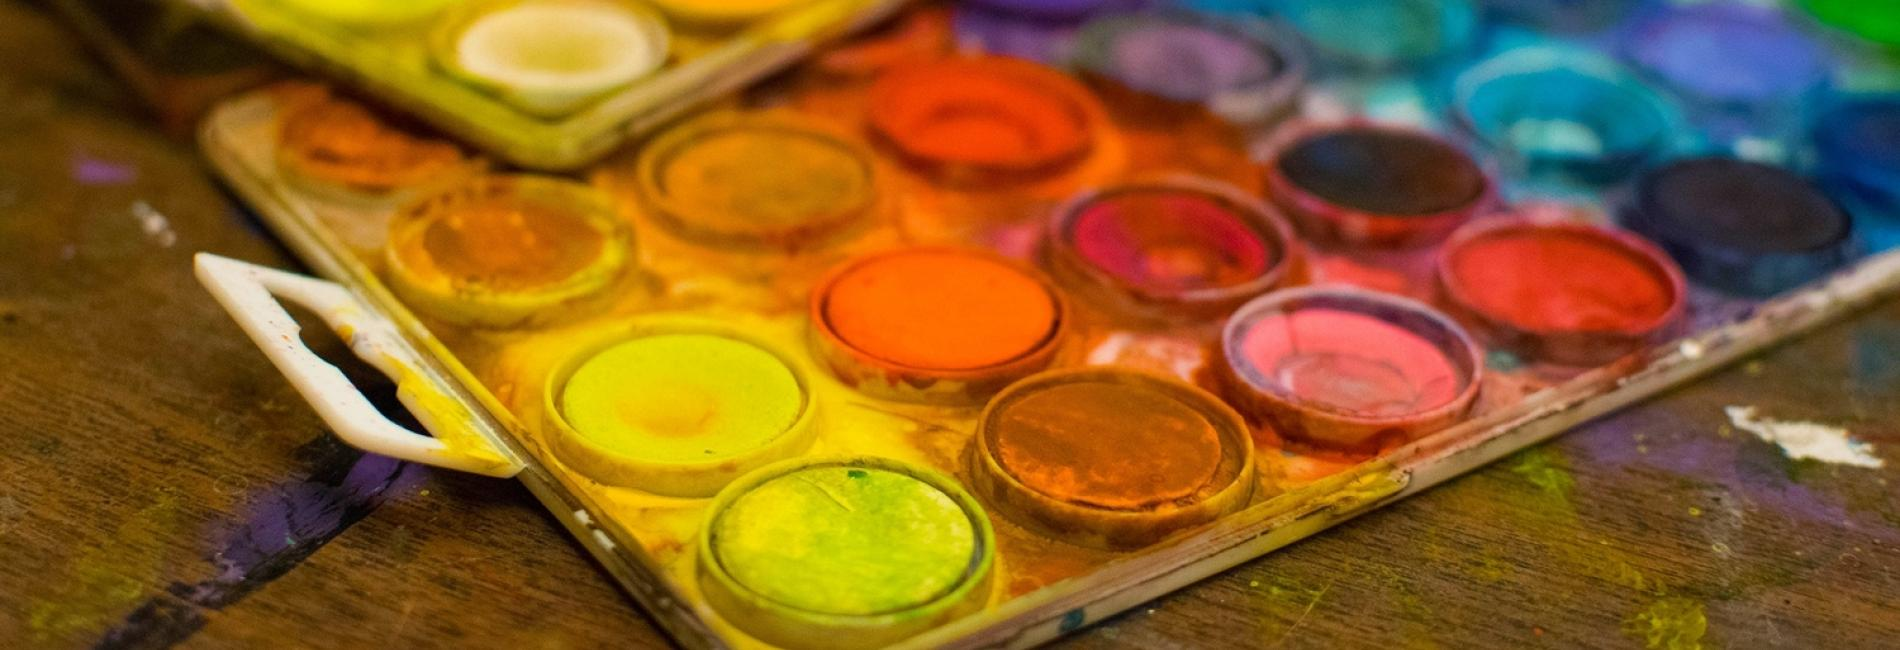 Paints on a tray